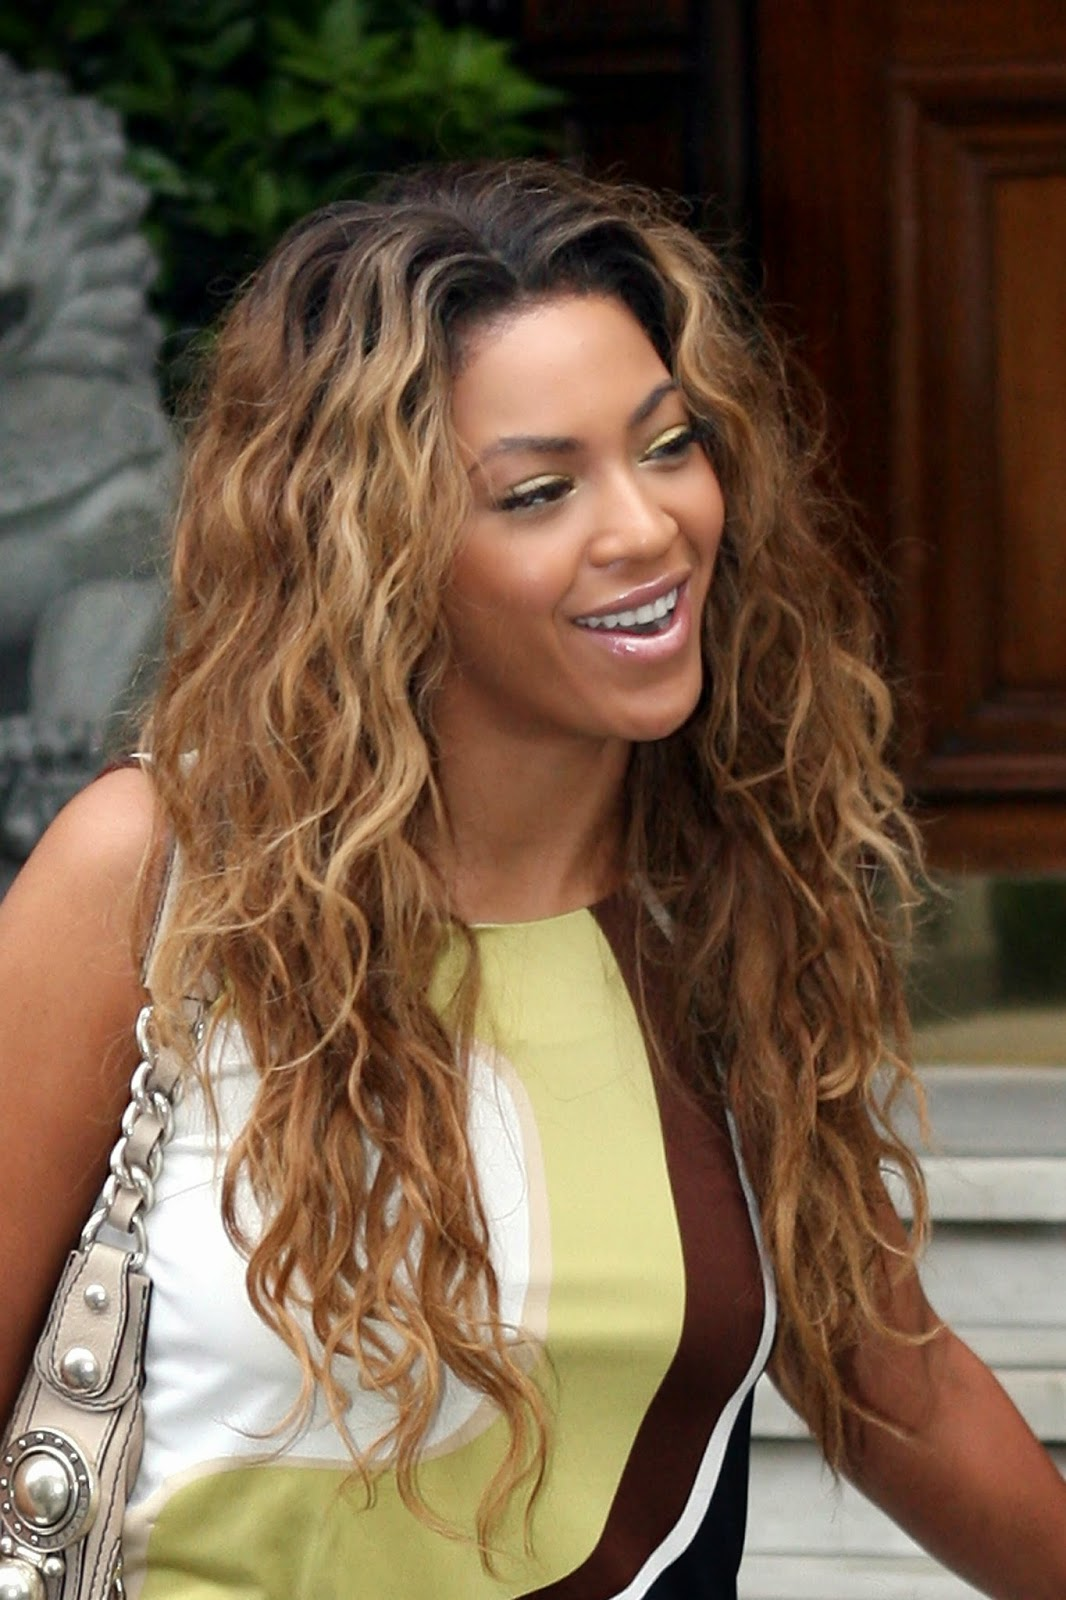 Hollywood Actress Wallpaper: Beyoncé Giselle Knowles HD ... Beyonce Knowles